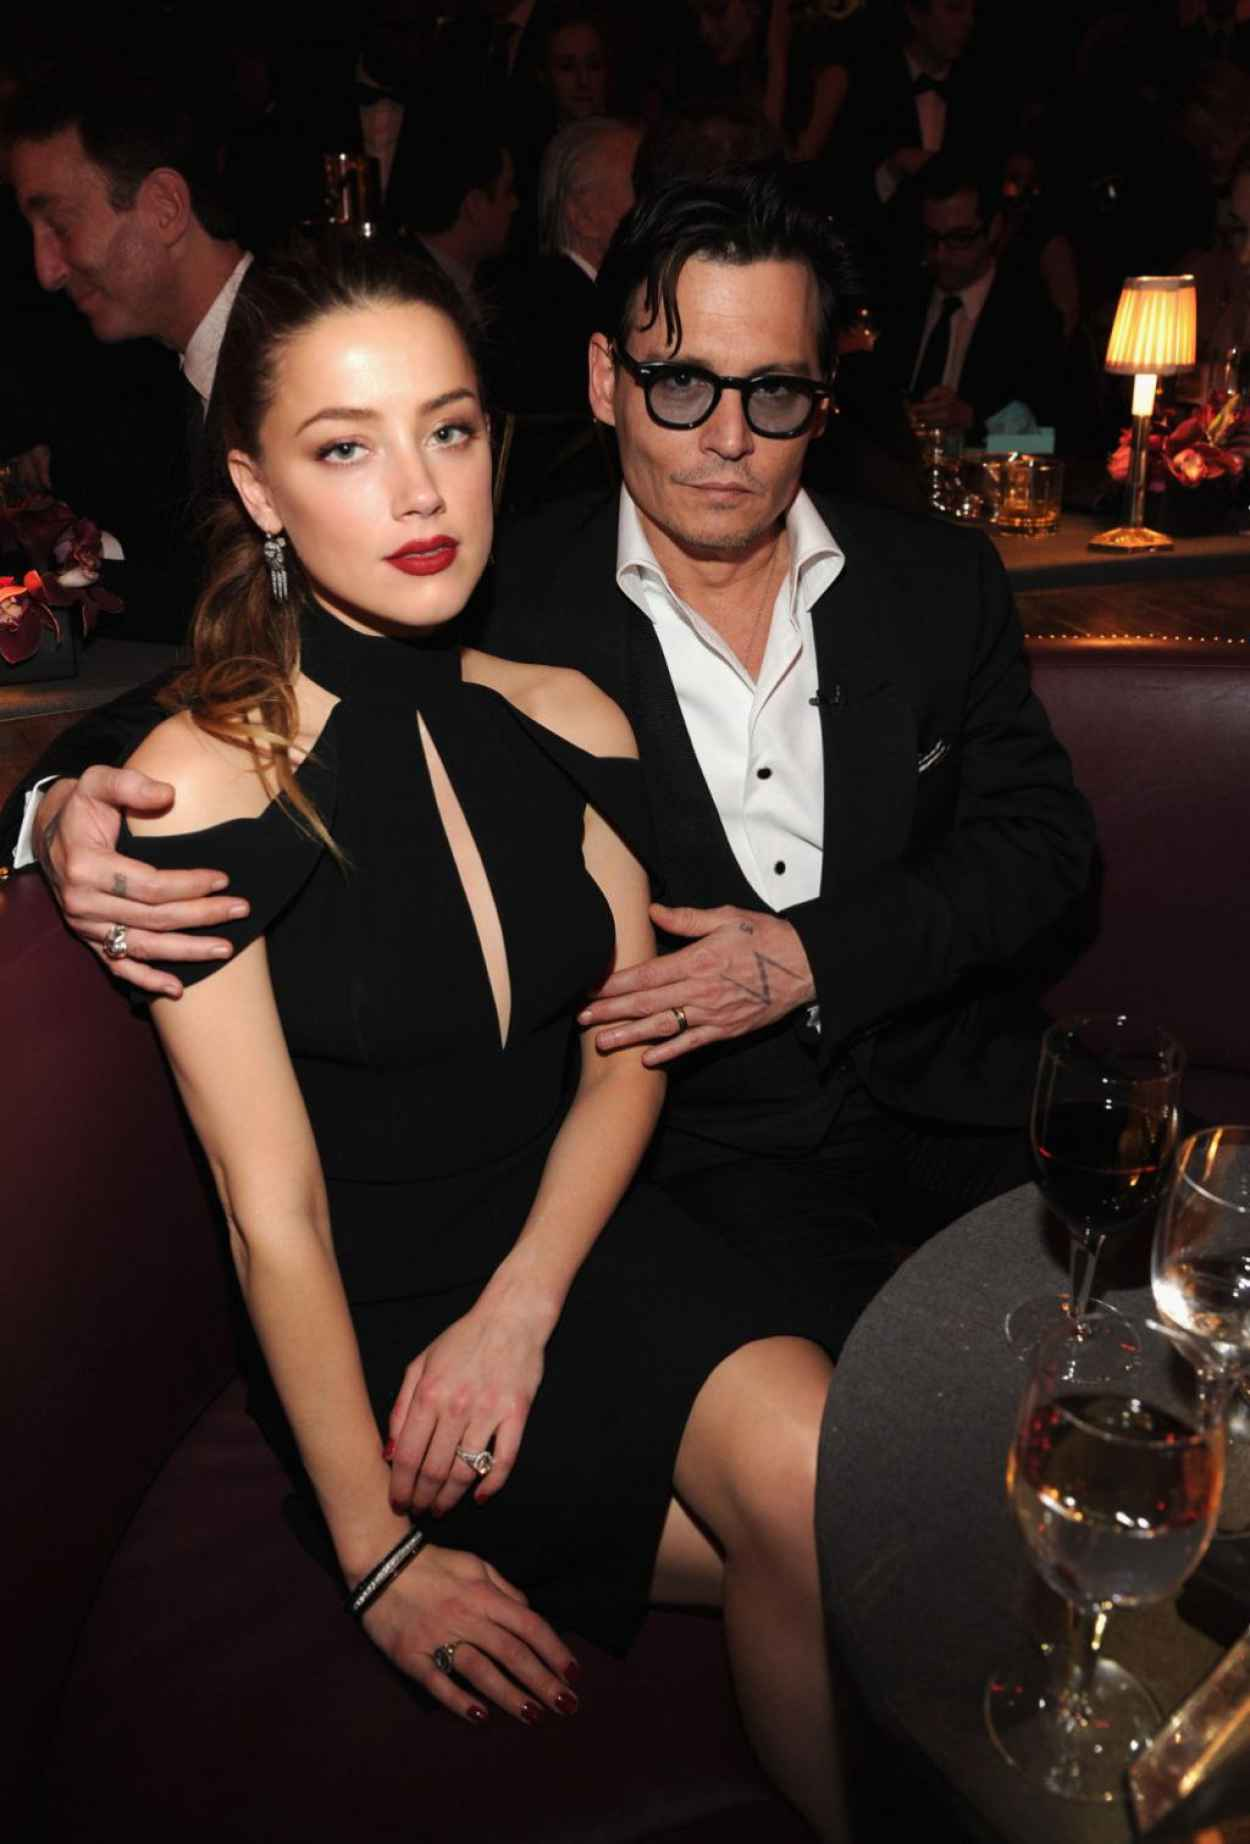 Amber Heard and Johnny Depp - Spike TVs Don Rickles One Night Only Show in NYC - May 2015-1